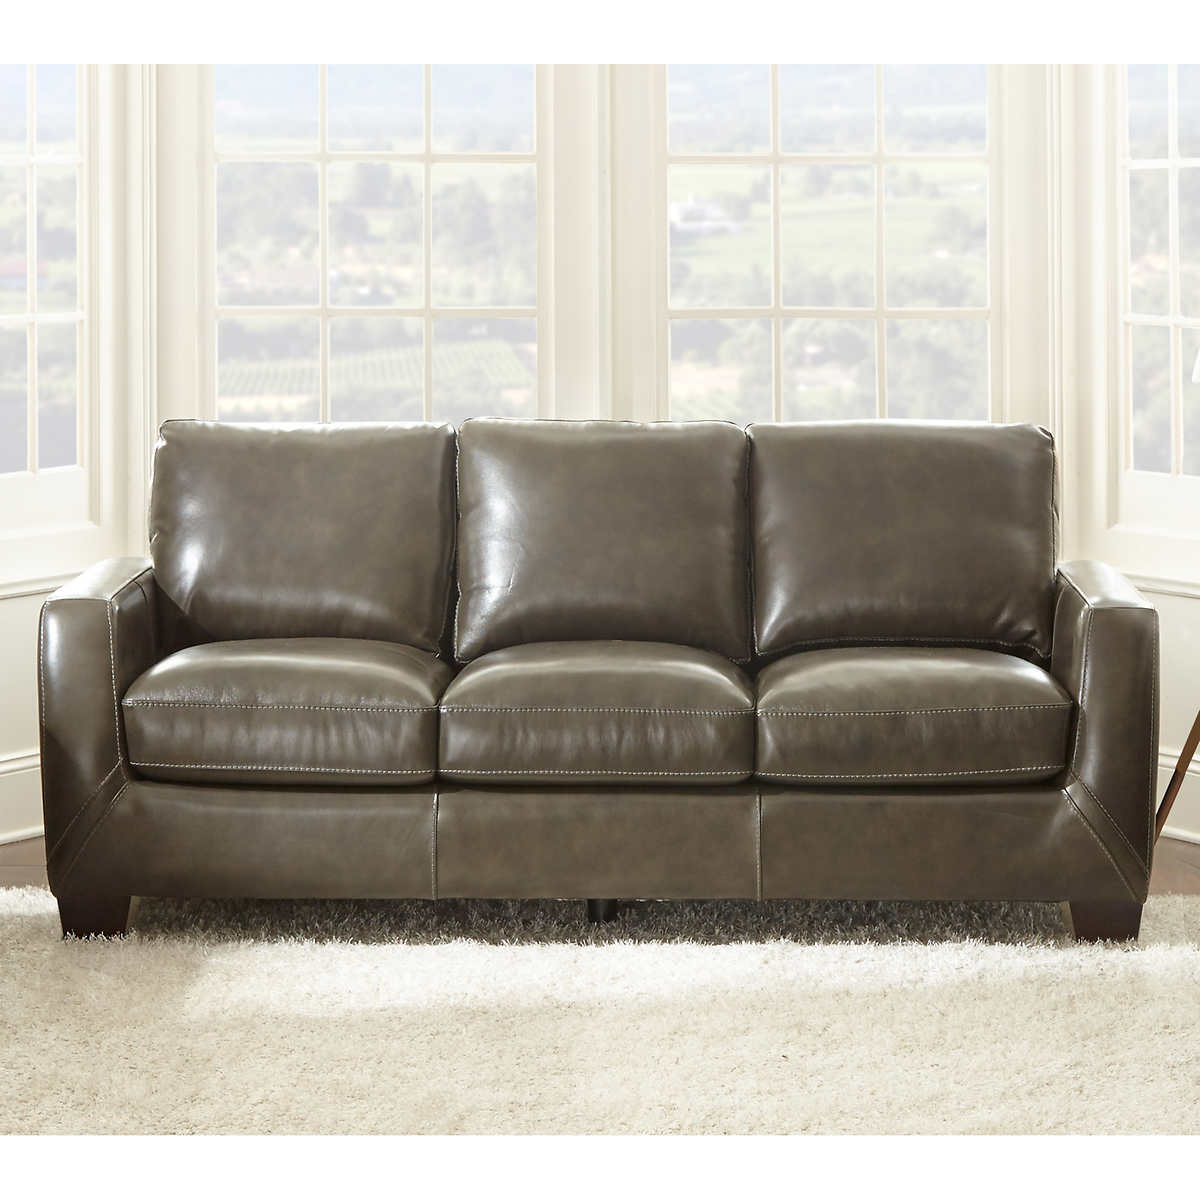 Incredible Sheldon Top Grain Leather Sofa Ocoug Best Dining Table And Chair Ideas Images Ocougorg